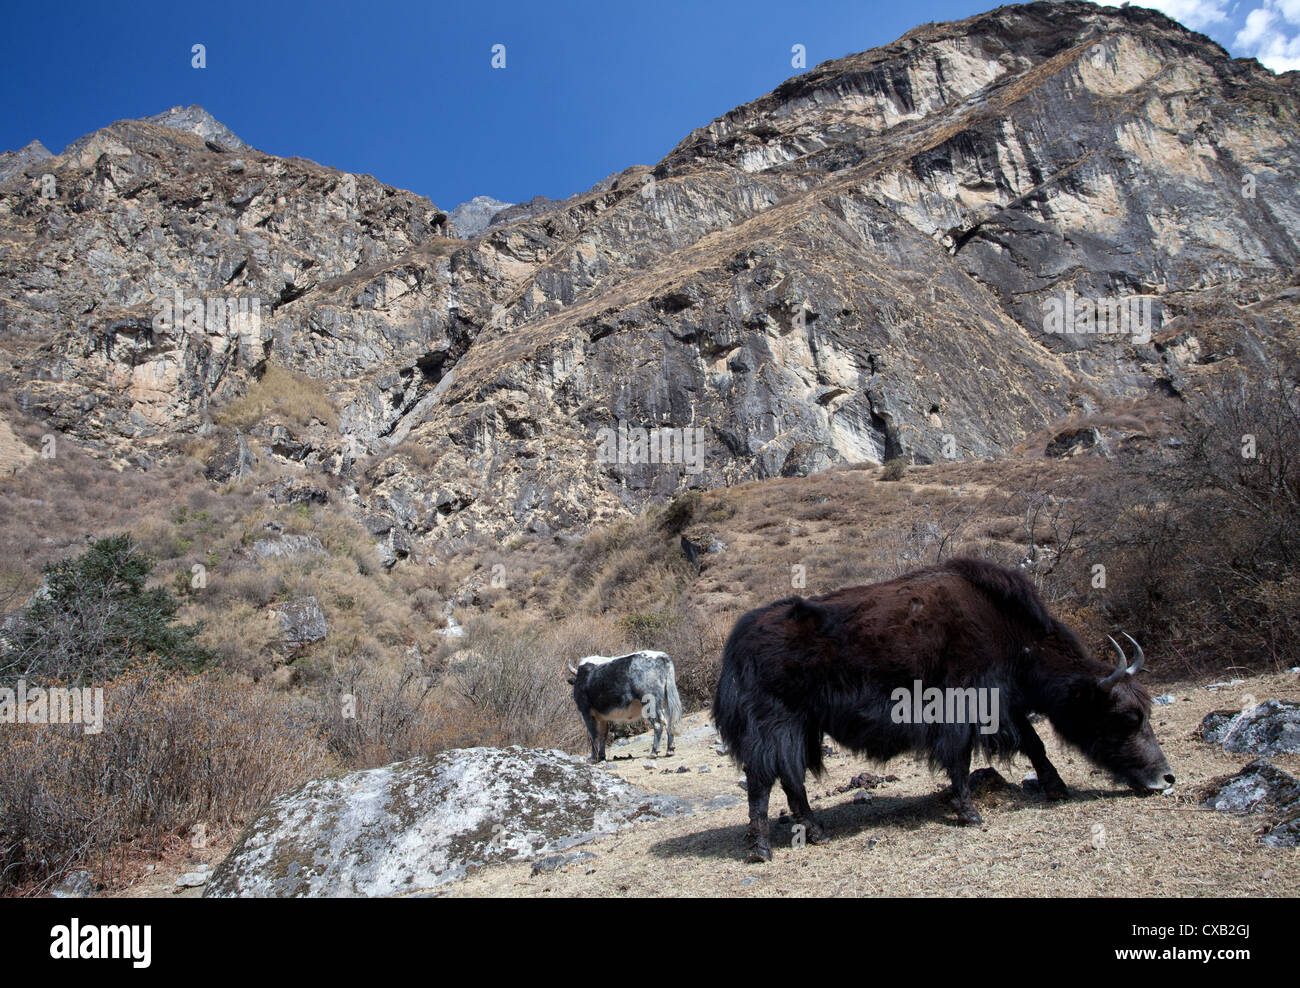 Yaks, Bos grunniens, grazing next to a rocky cliff, Langtang Valley, Nepal - Stock Image